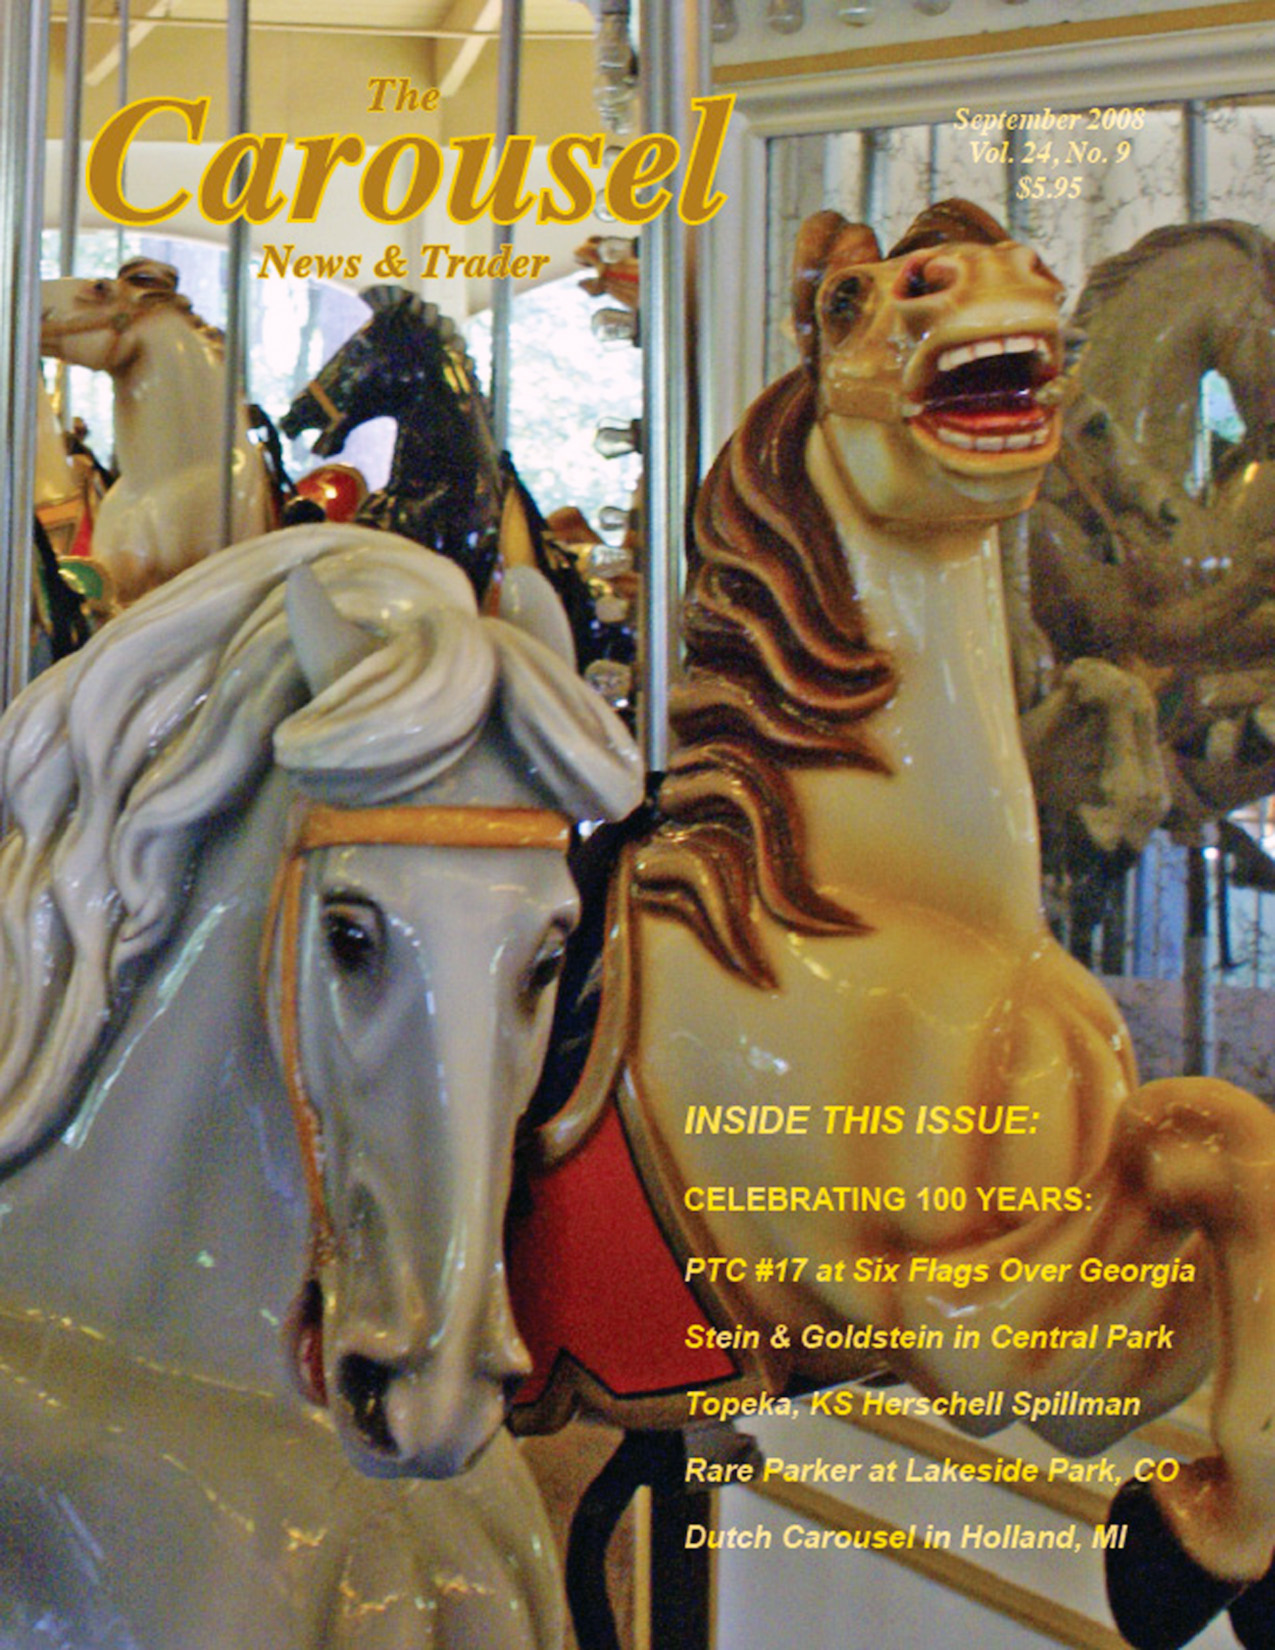 Carousel-news-cover-9-PTC-17-Six-Flags-Georgia-carousel-September-2008